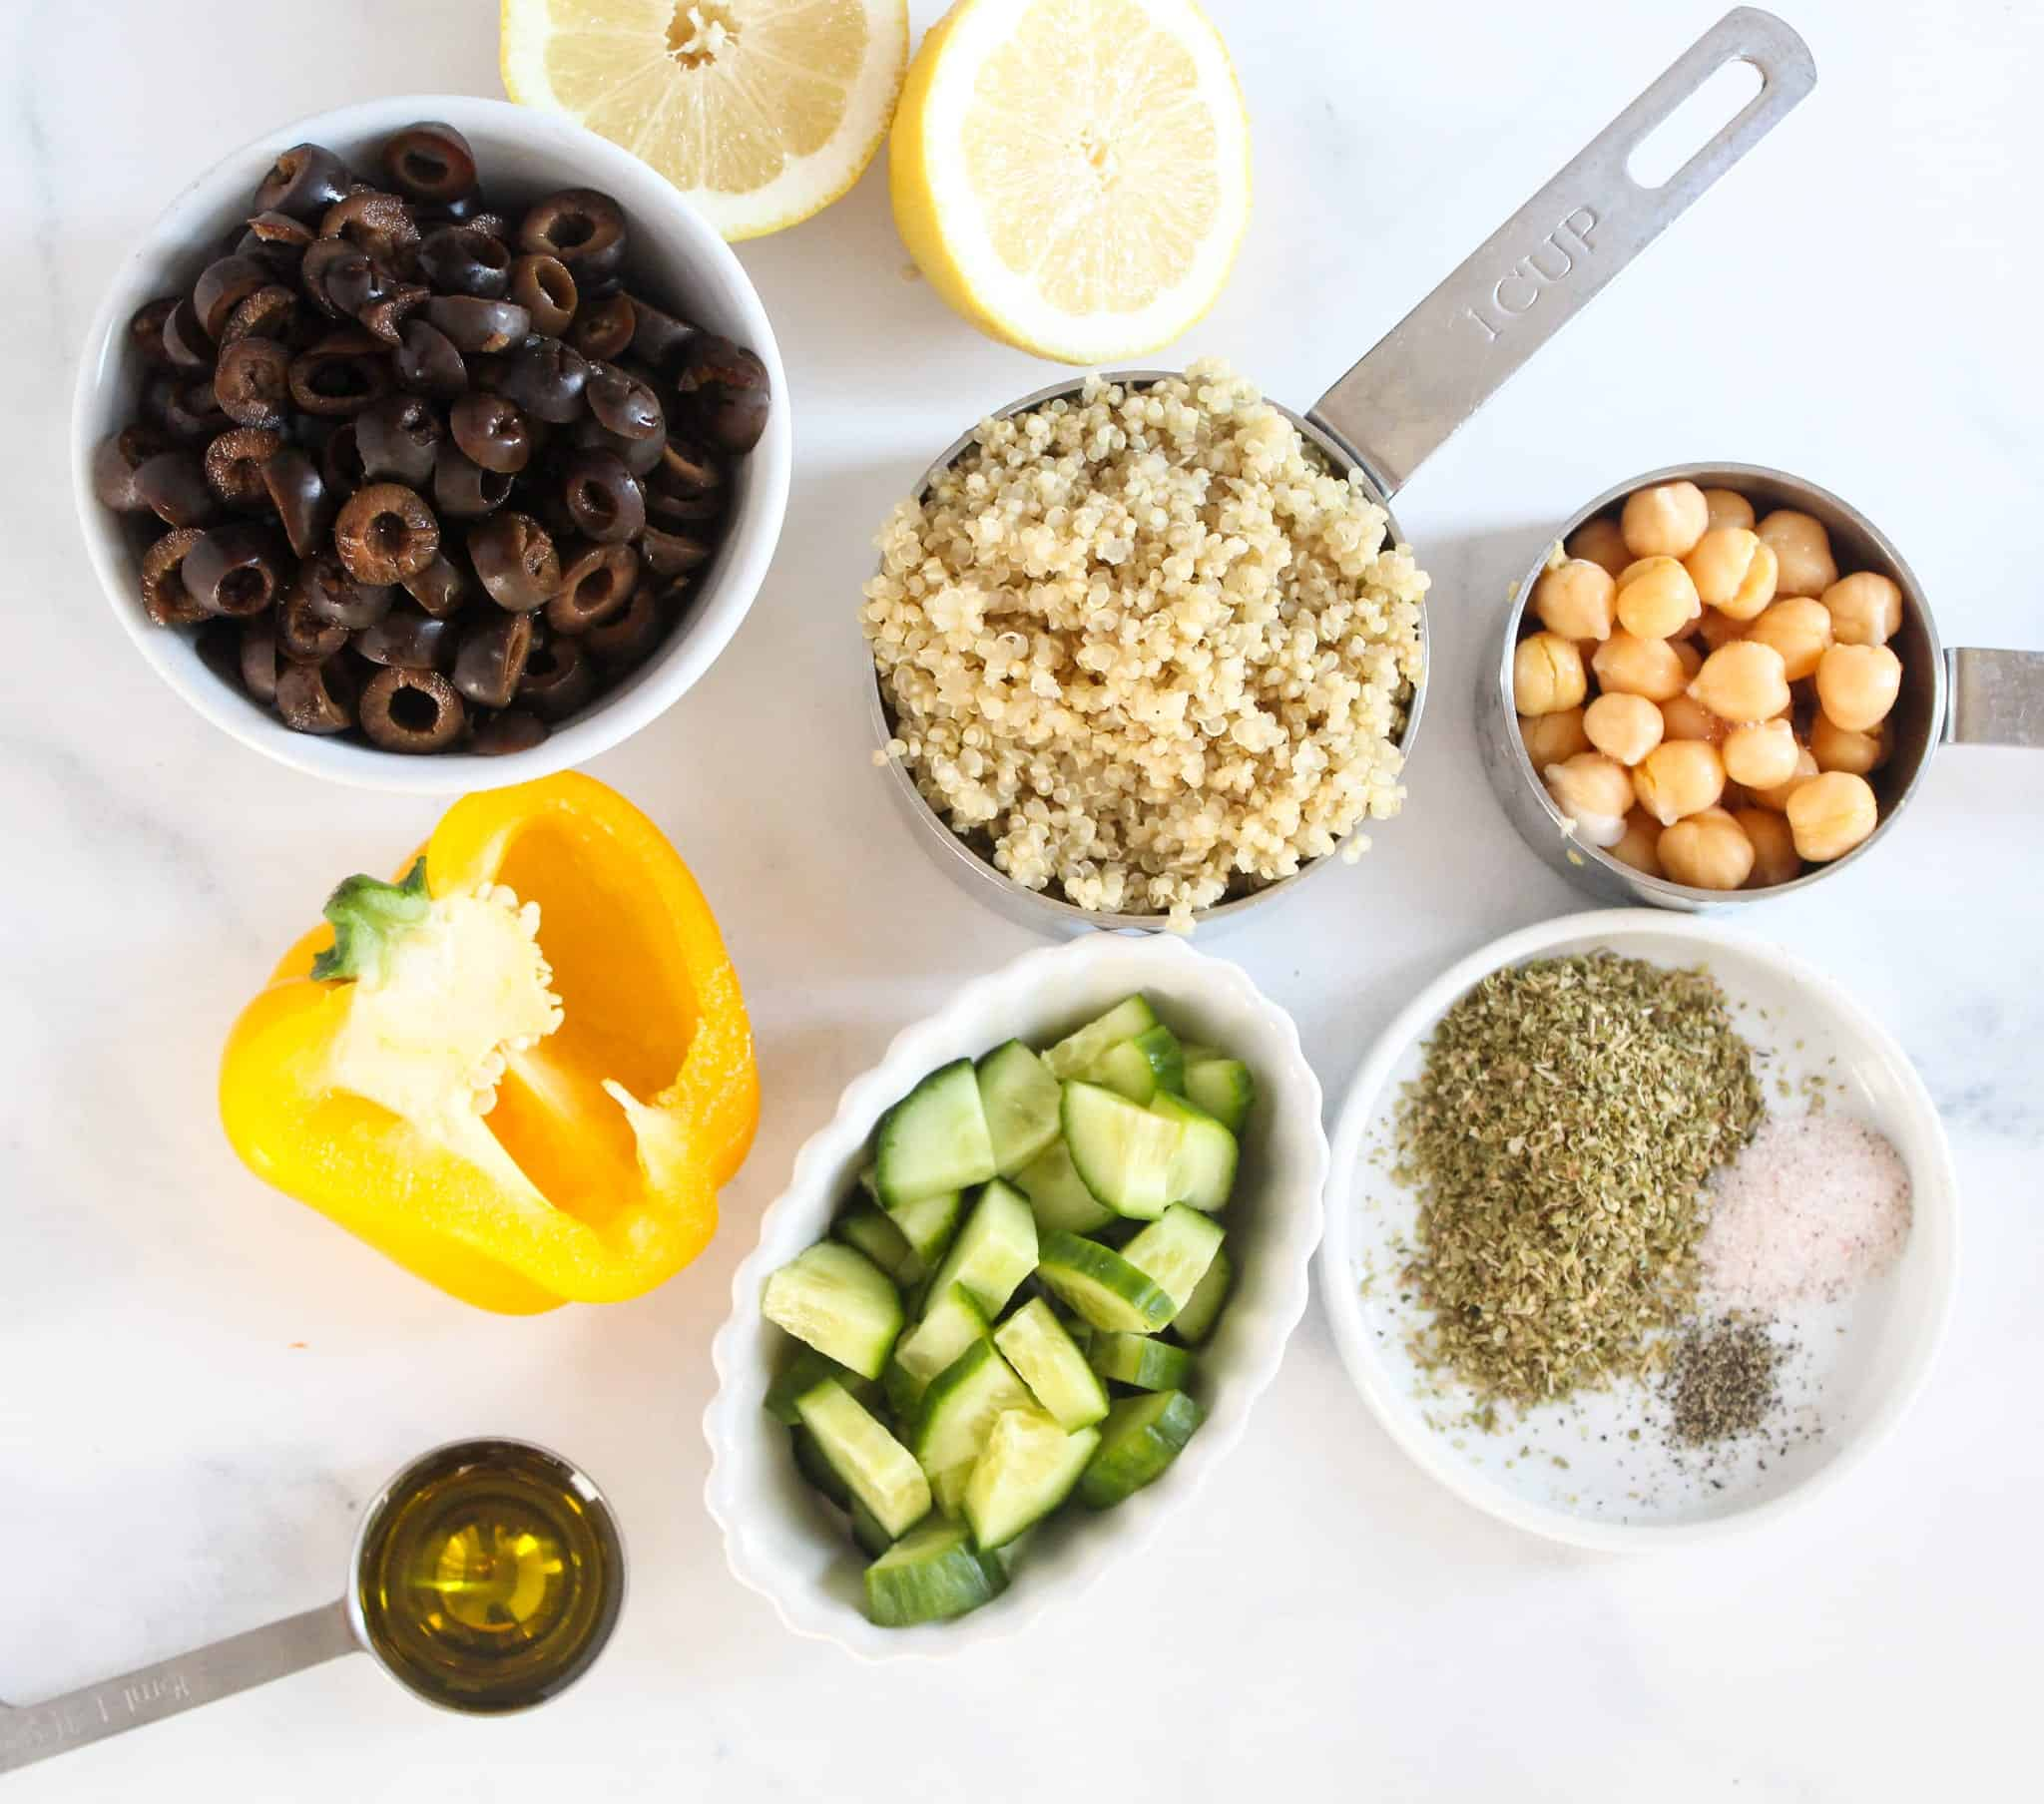 Mediterranean Quinoa Salad - Easy Lunch #lowFODMAP #glutenfree #dairyfree #vegan #vegetarian